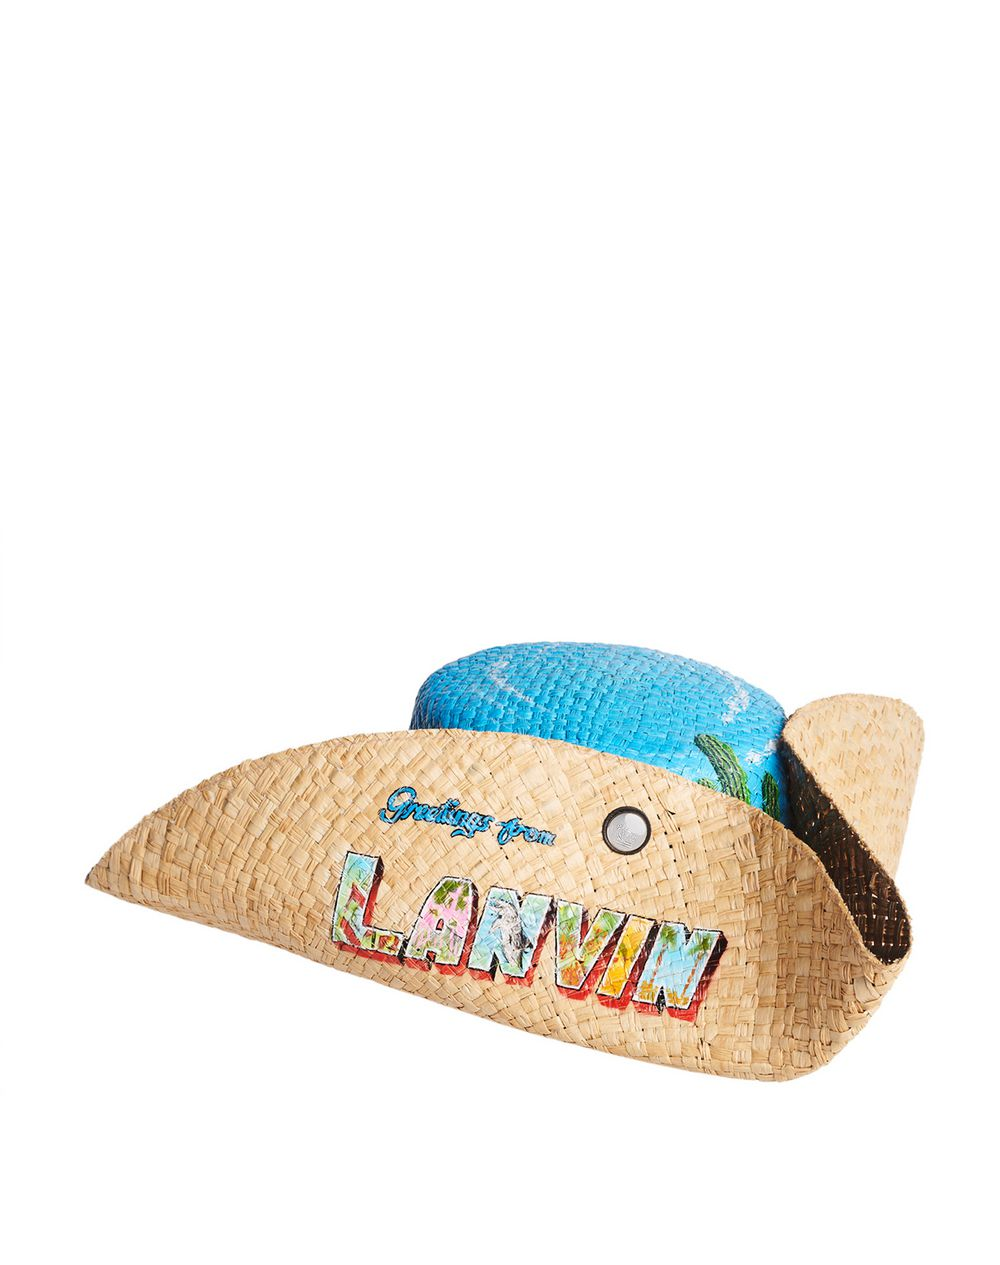 PAINTED STRAW HAT - Lanvin